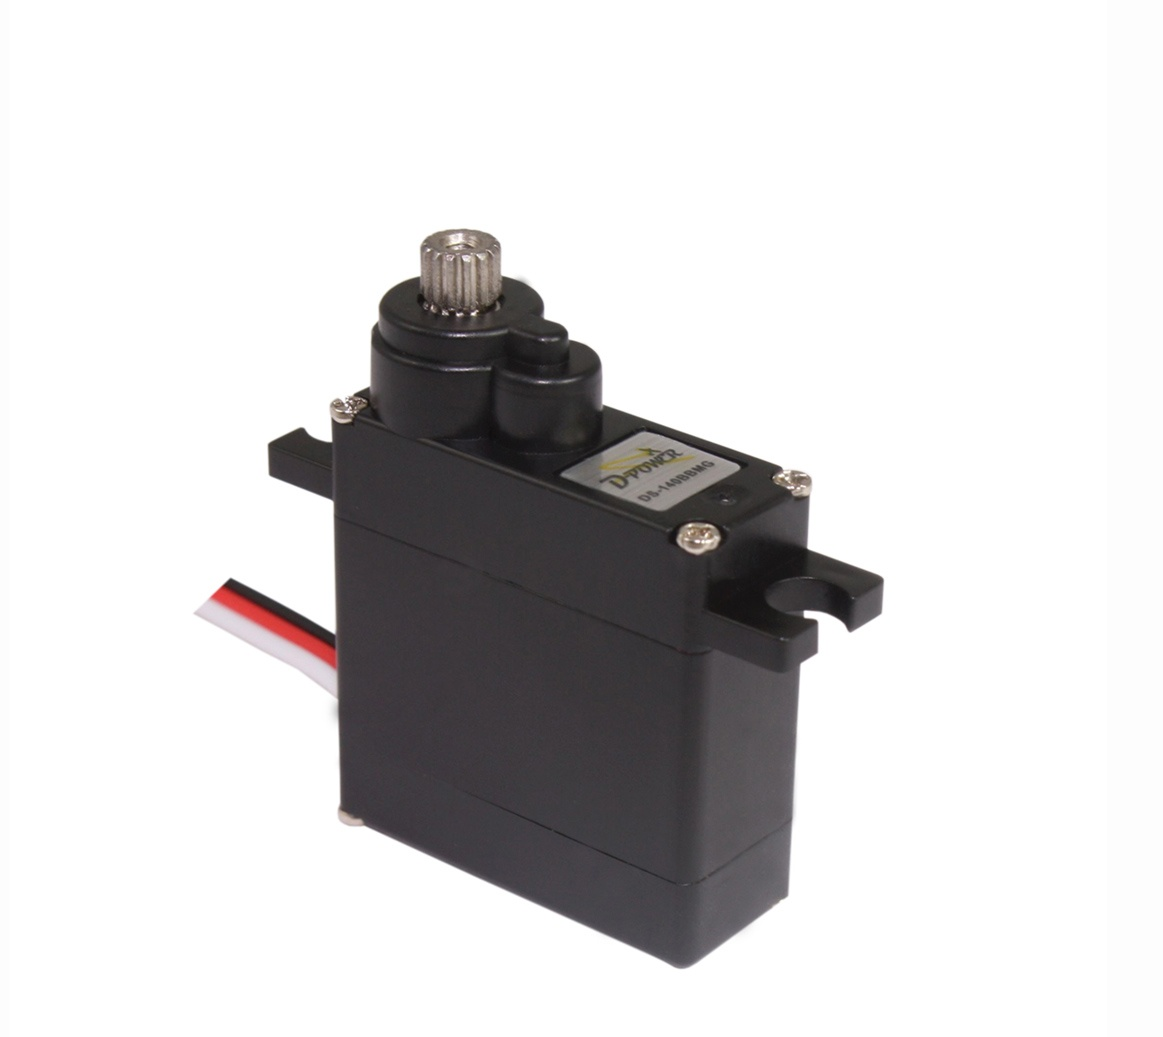 D-Power DS-140BB MG Digital-Servo